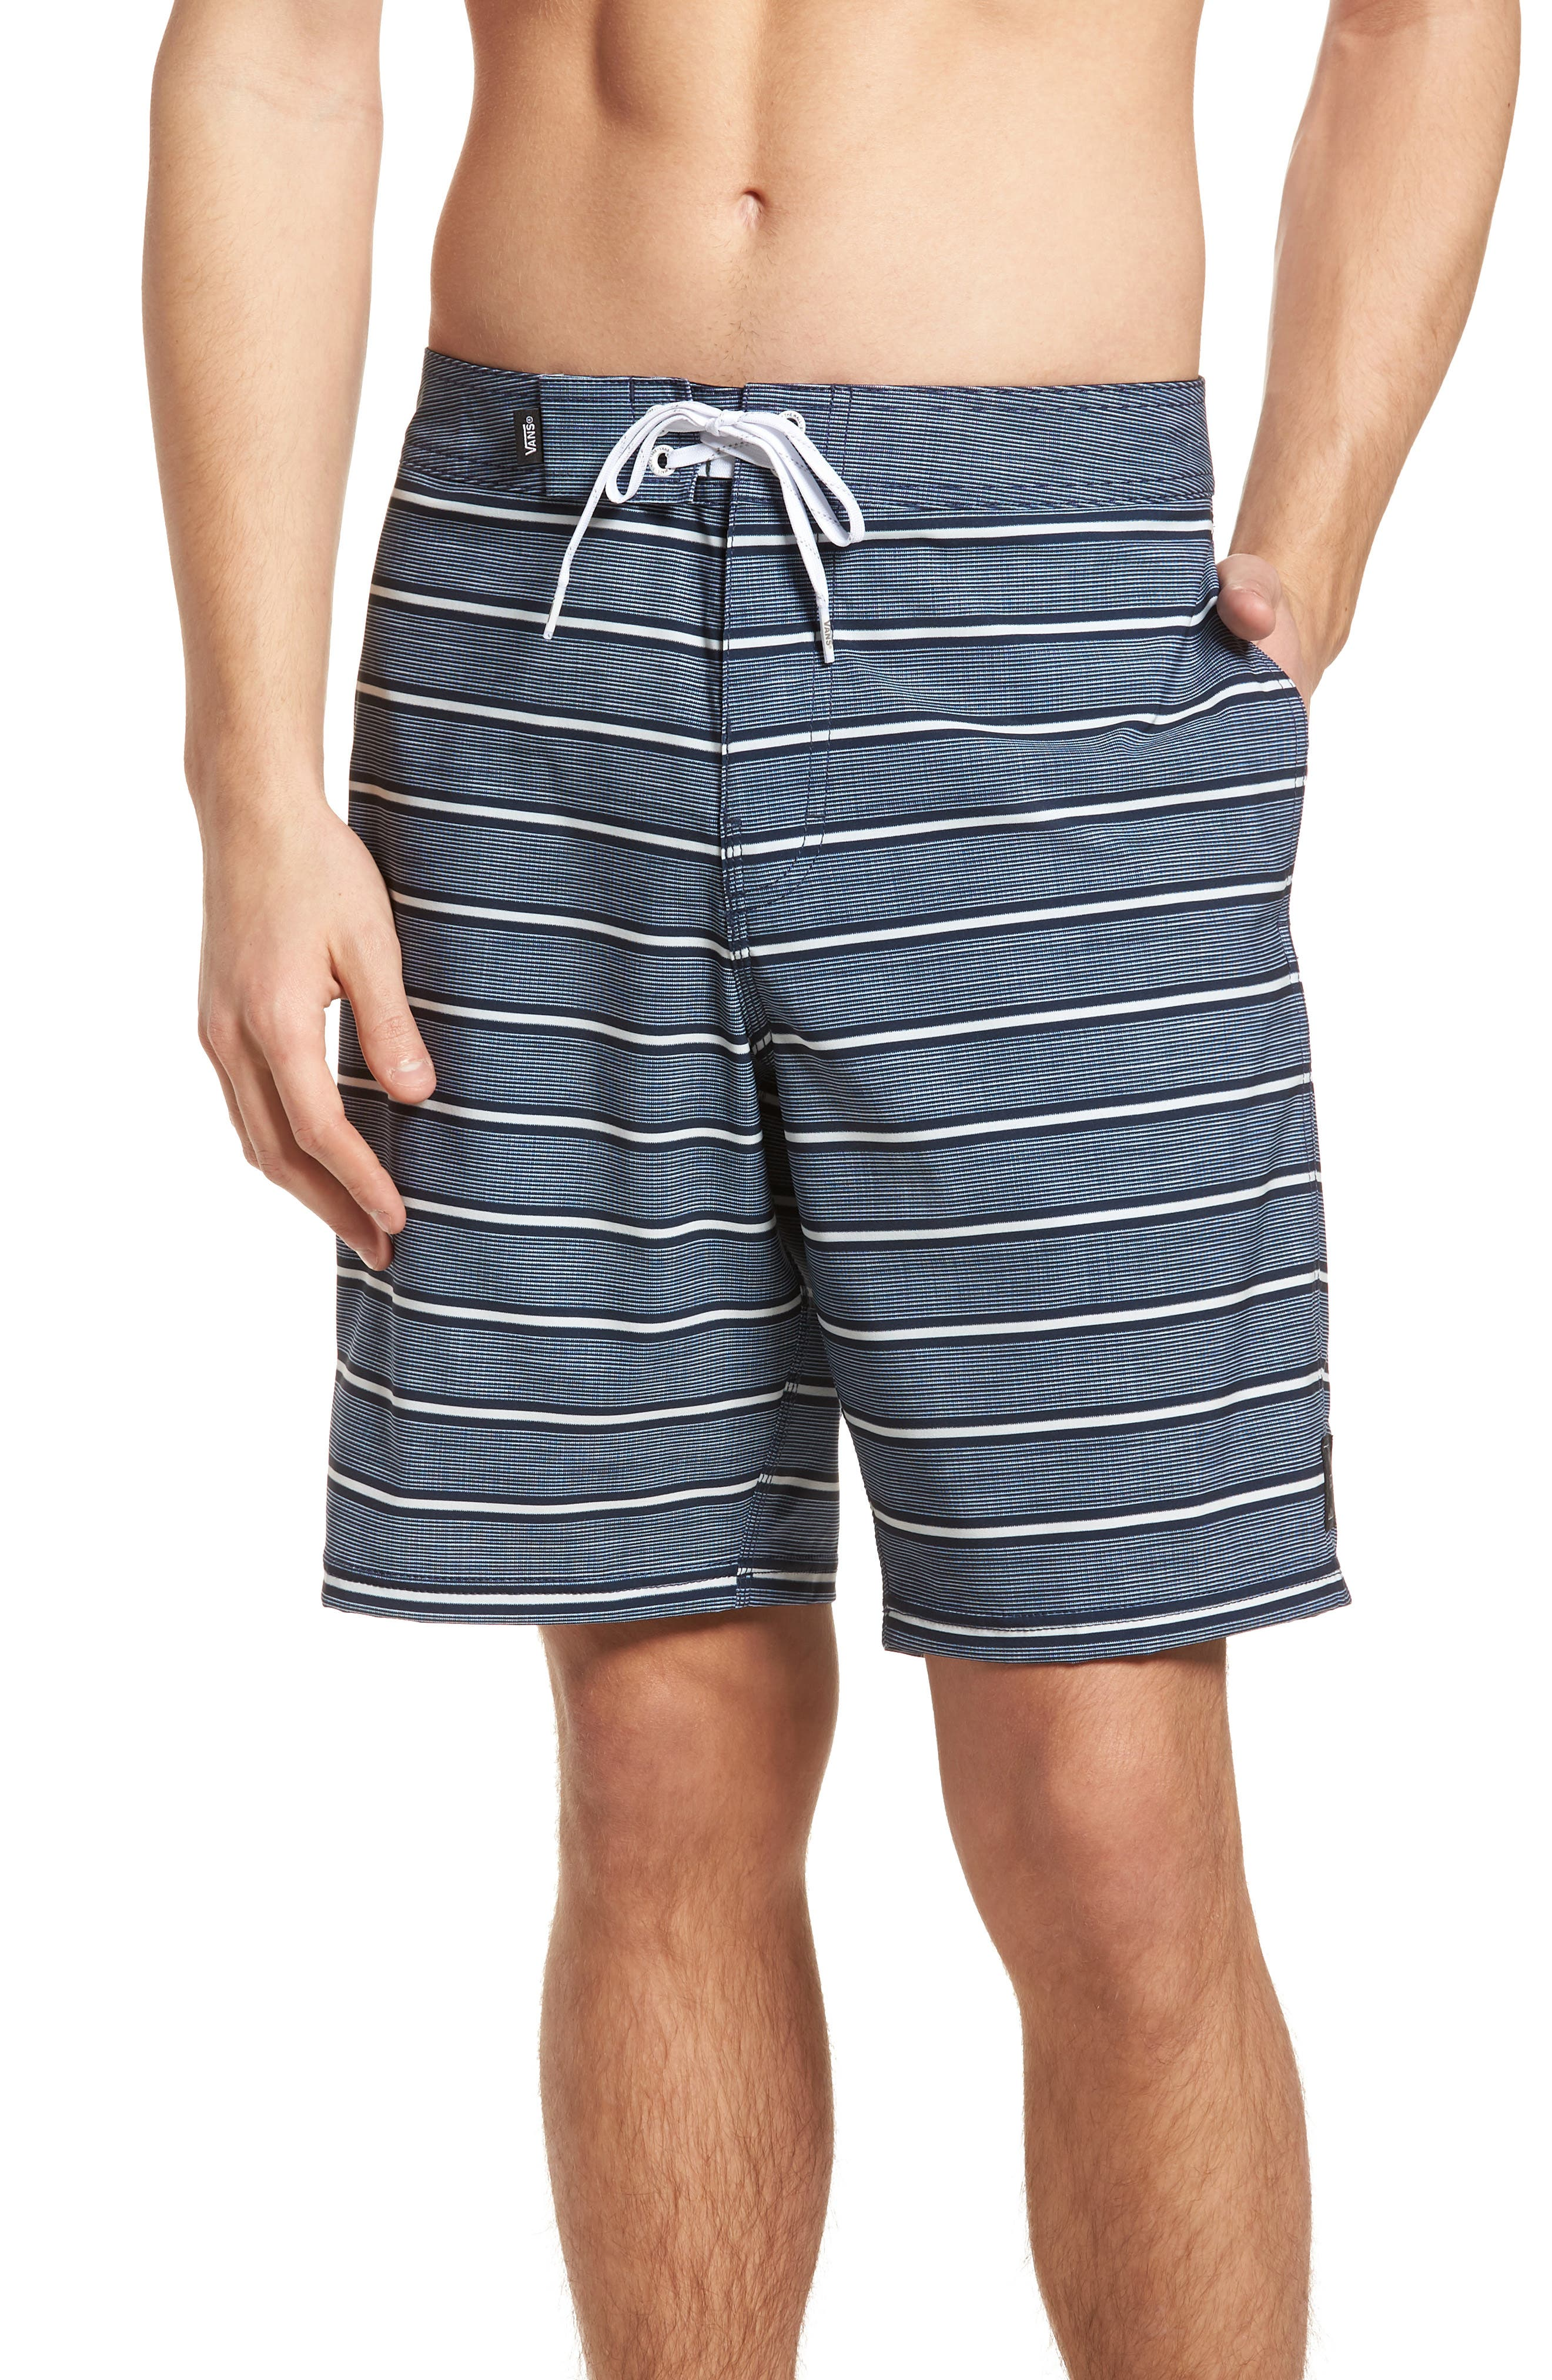 Rooftop Board Shorts,                         Main,                         color, Dress Blues